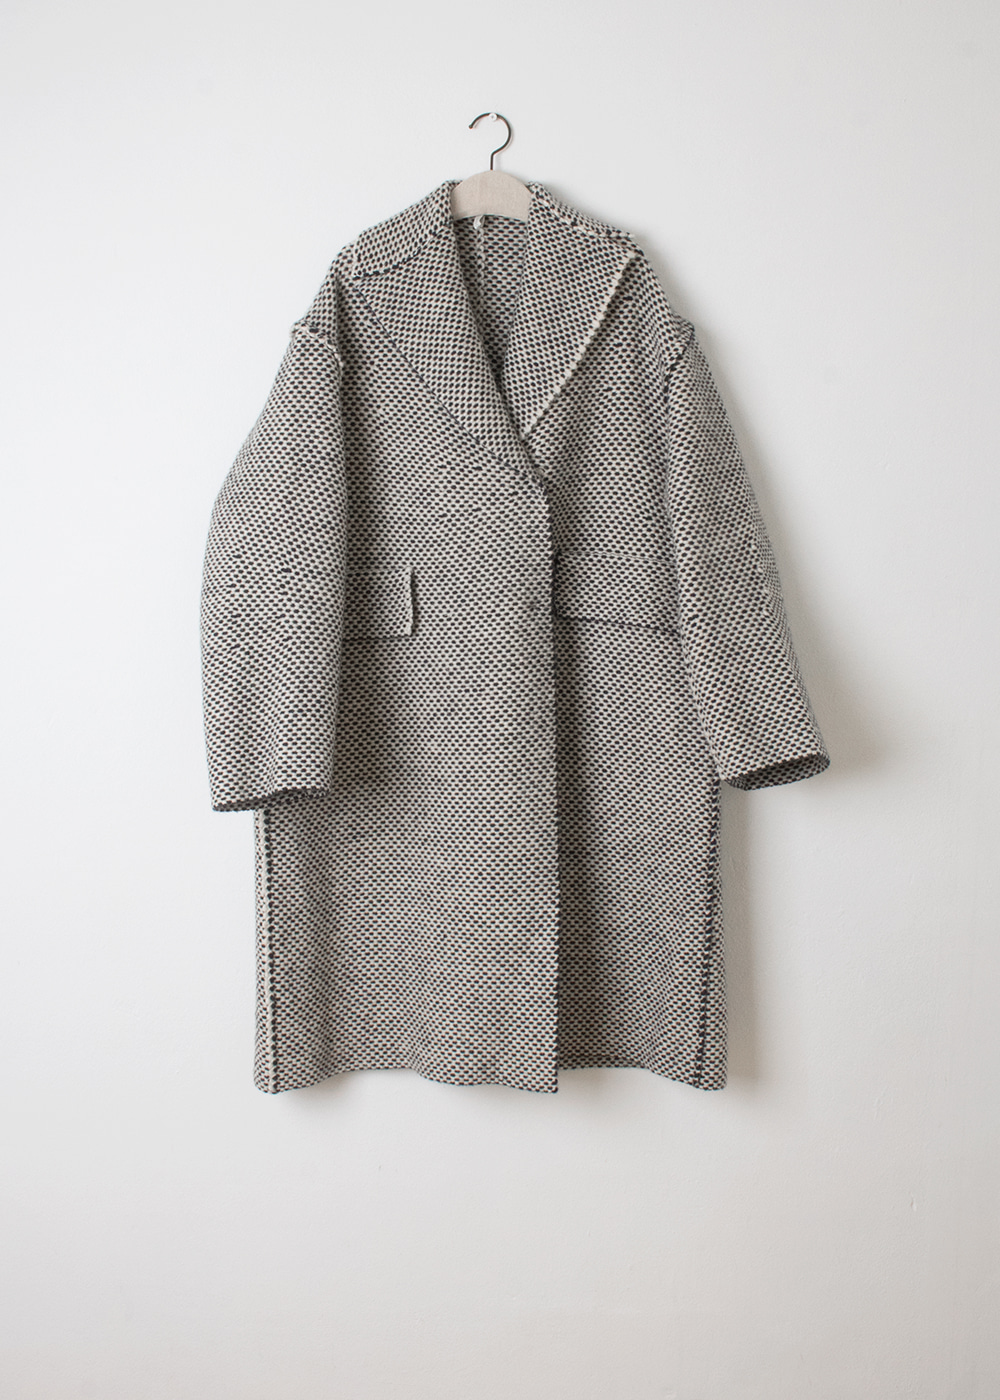 CREAM BLUE EYE COAT